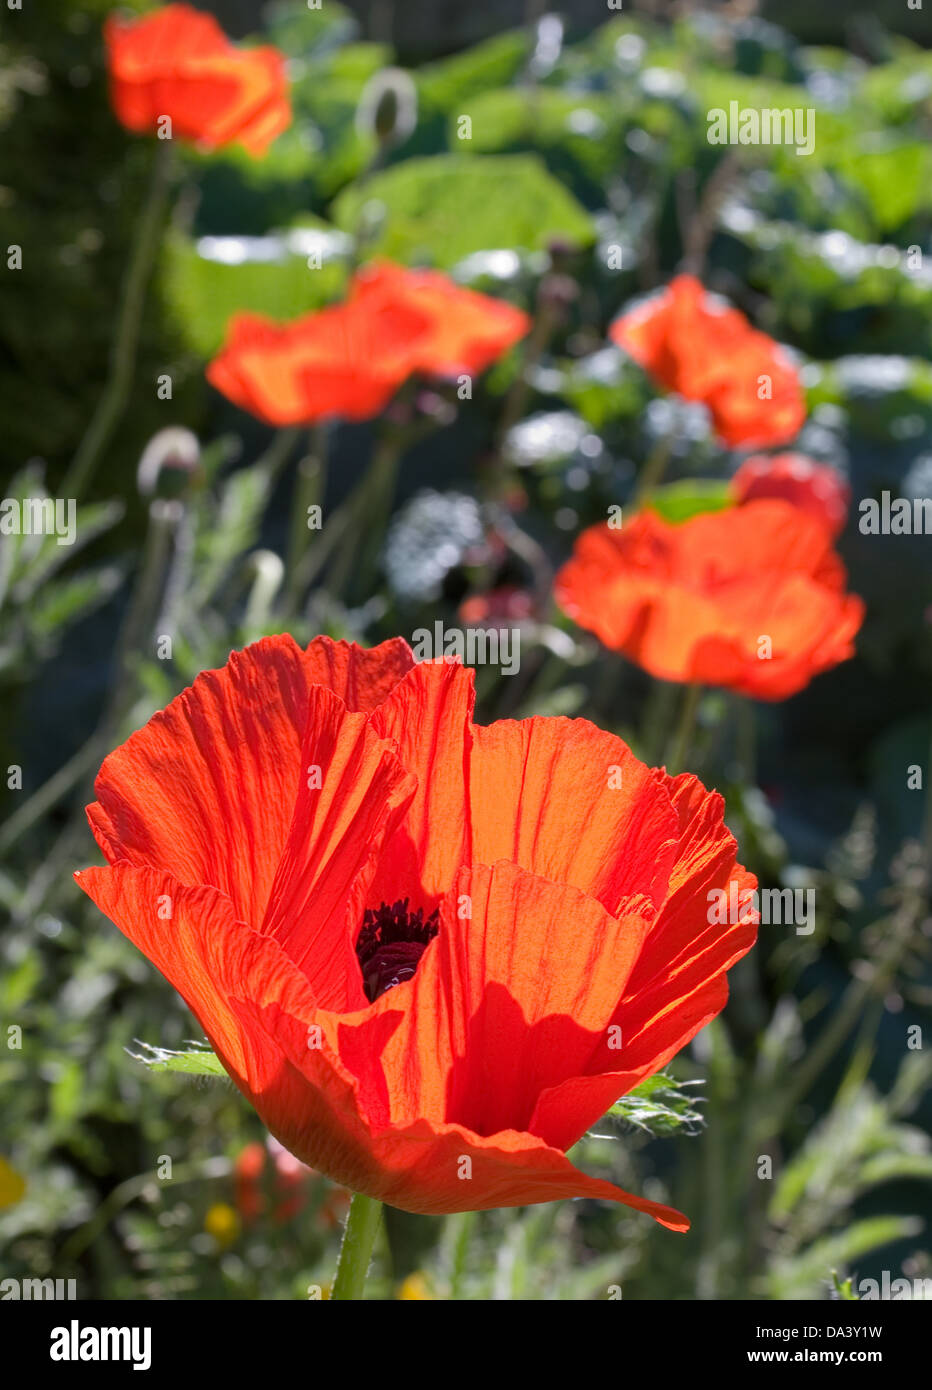 Bright red oriental poppies in flower in garden herbaceous border, backlit in sunshine,early summer, Cumbria, England Stock Photo